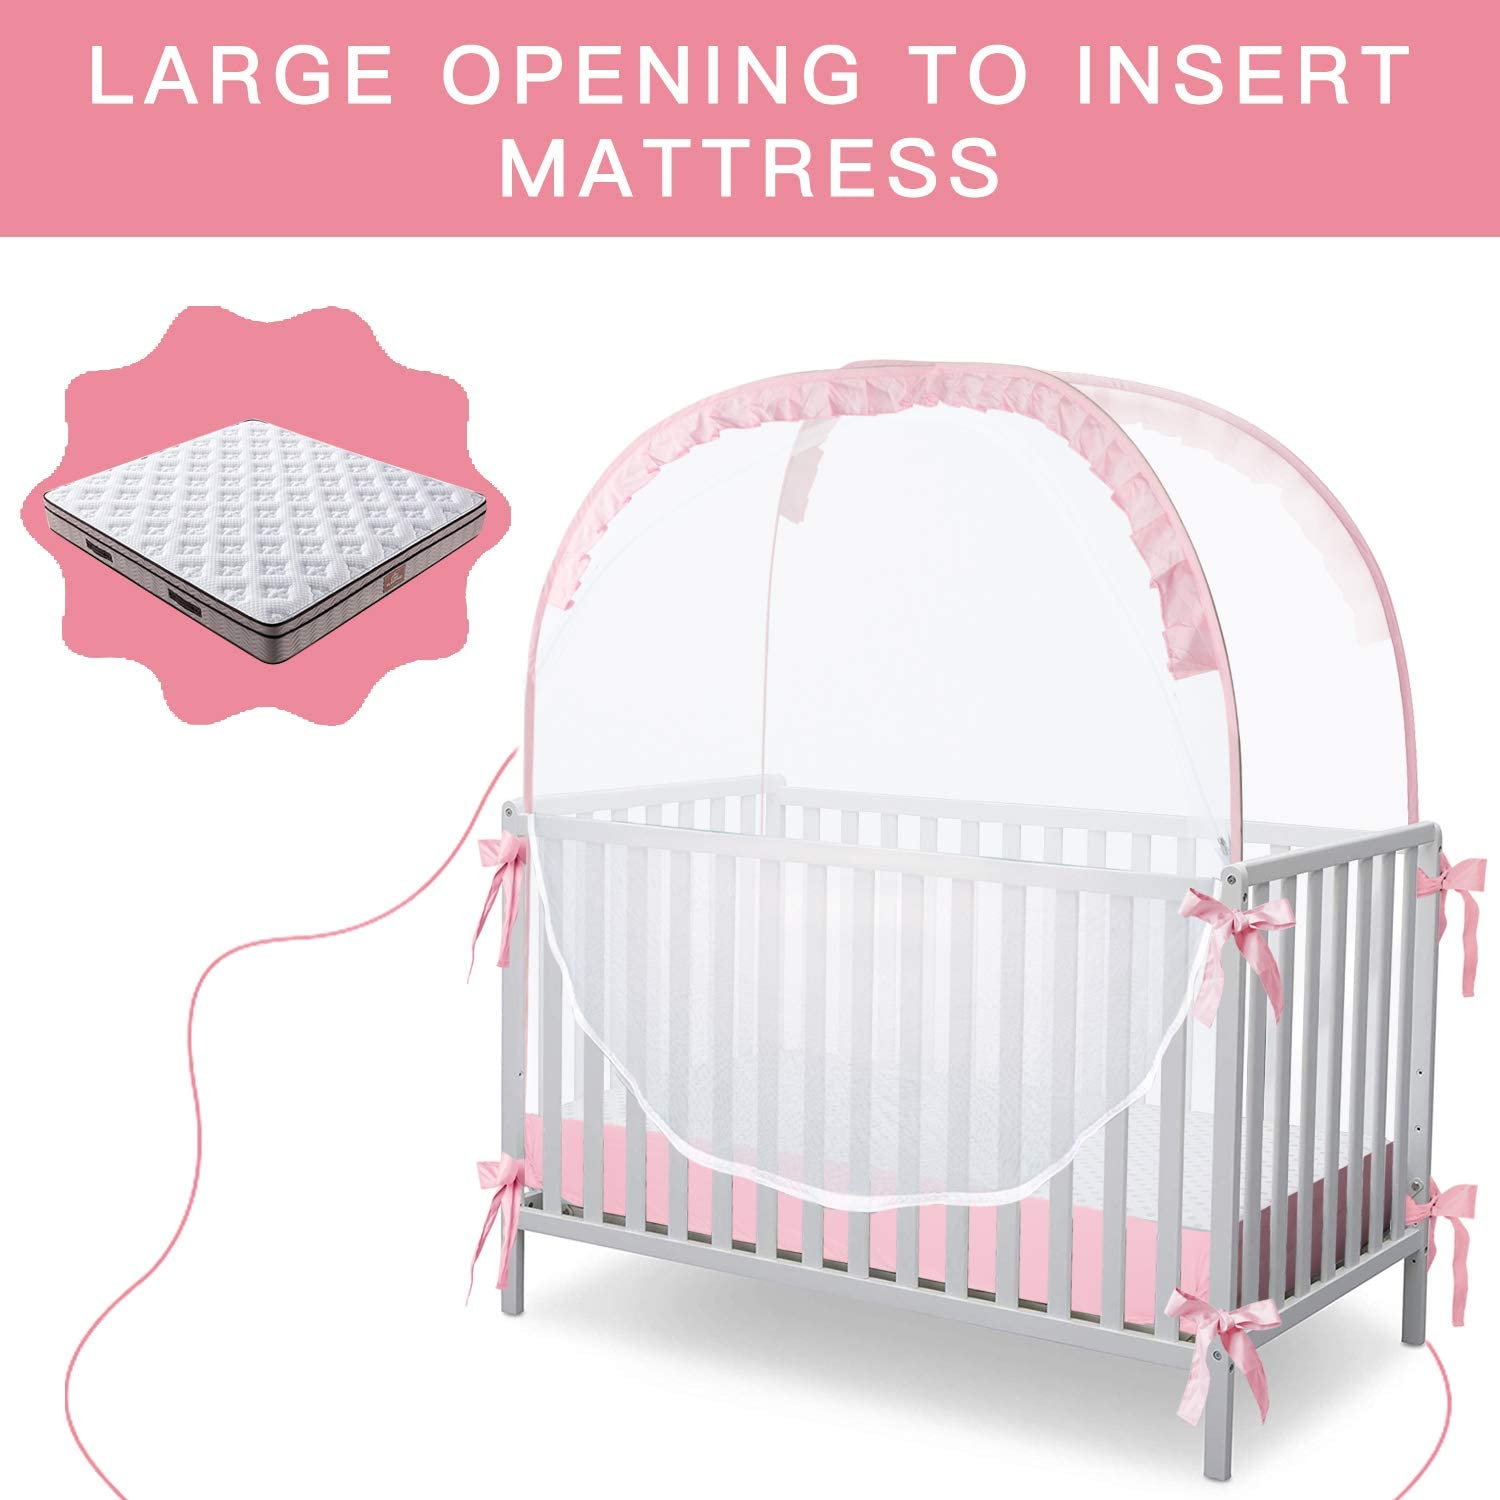 Hot Sale Baby Crib Safety Mesh Cover Toddler Pop Up Tents Mosquito Nets